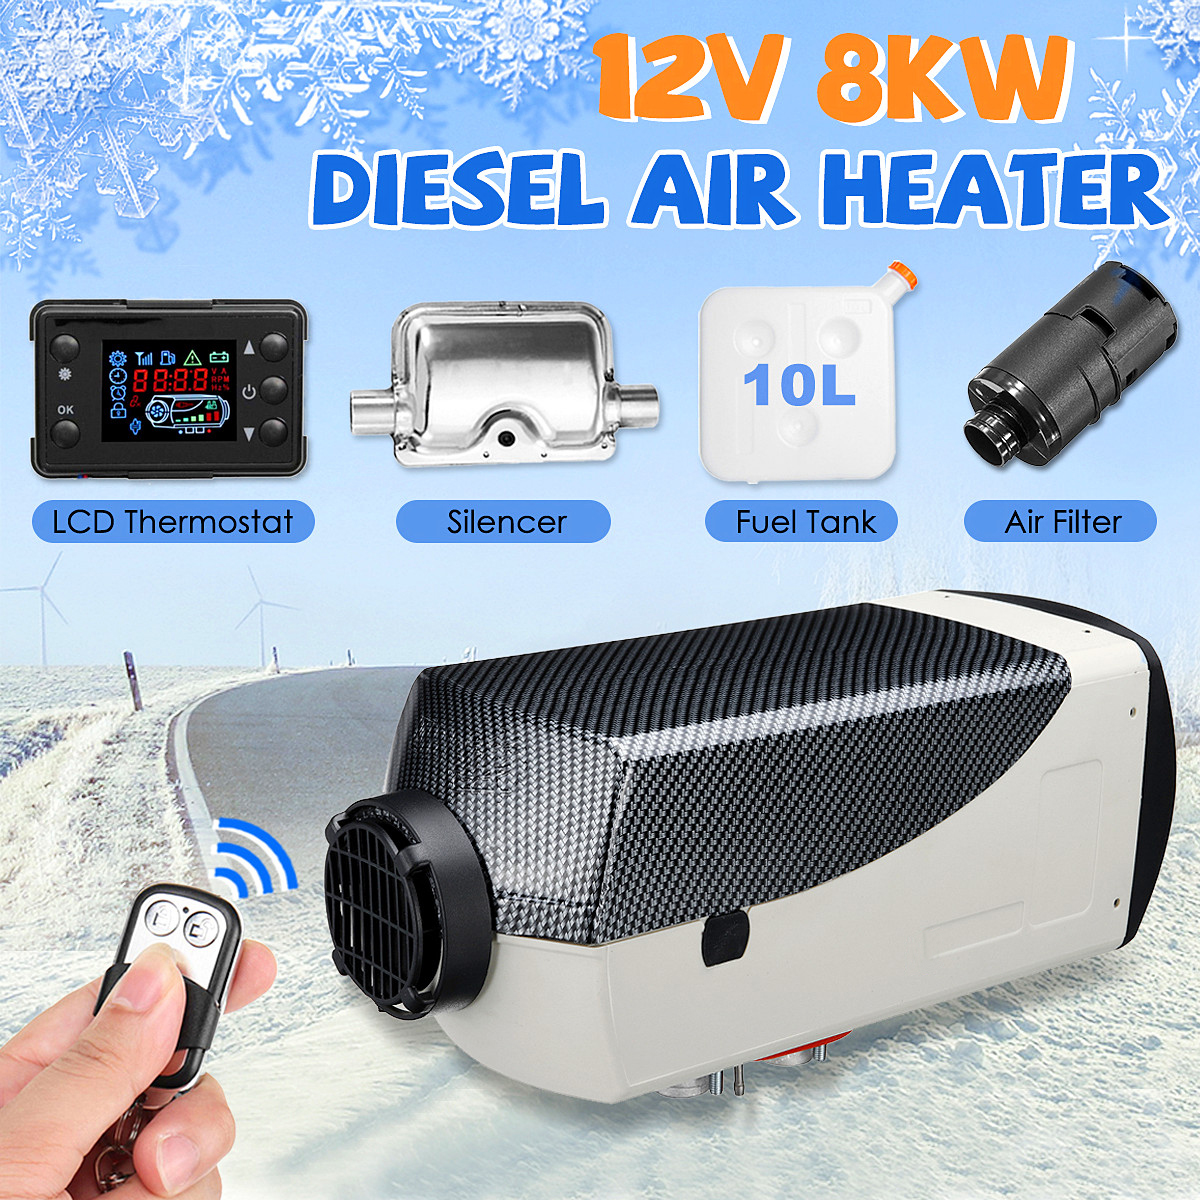 Car Heater 8KW 12V Air Diesels Heater Parking Heater With LCD Monitor Remote Control For RV Motorhome Trailer Trucks Boats Etc